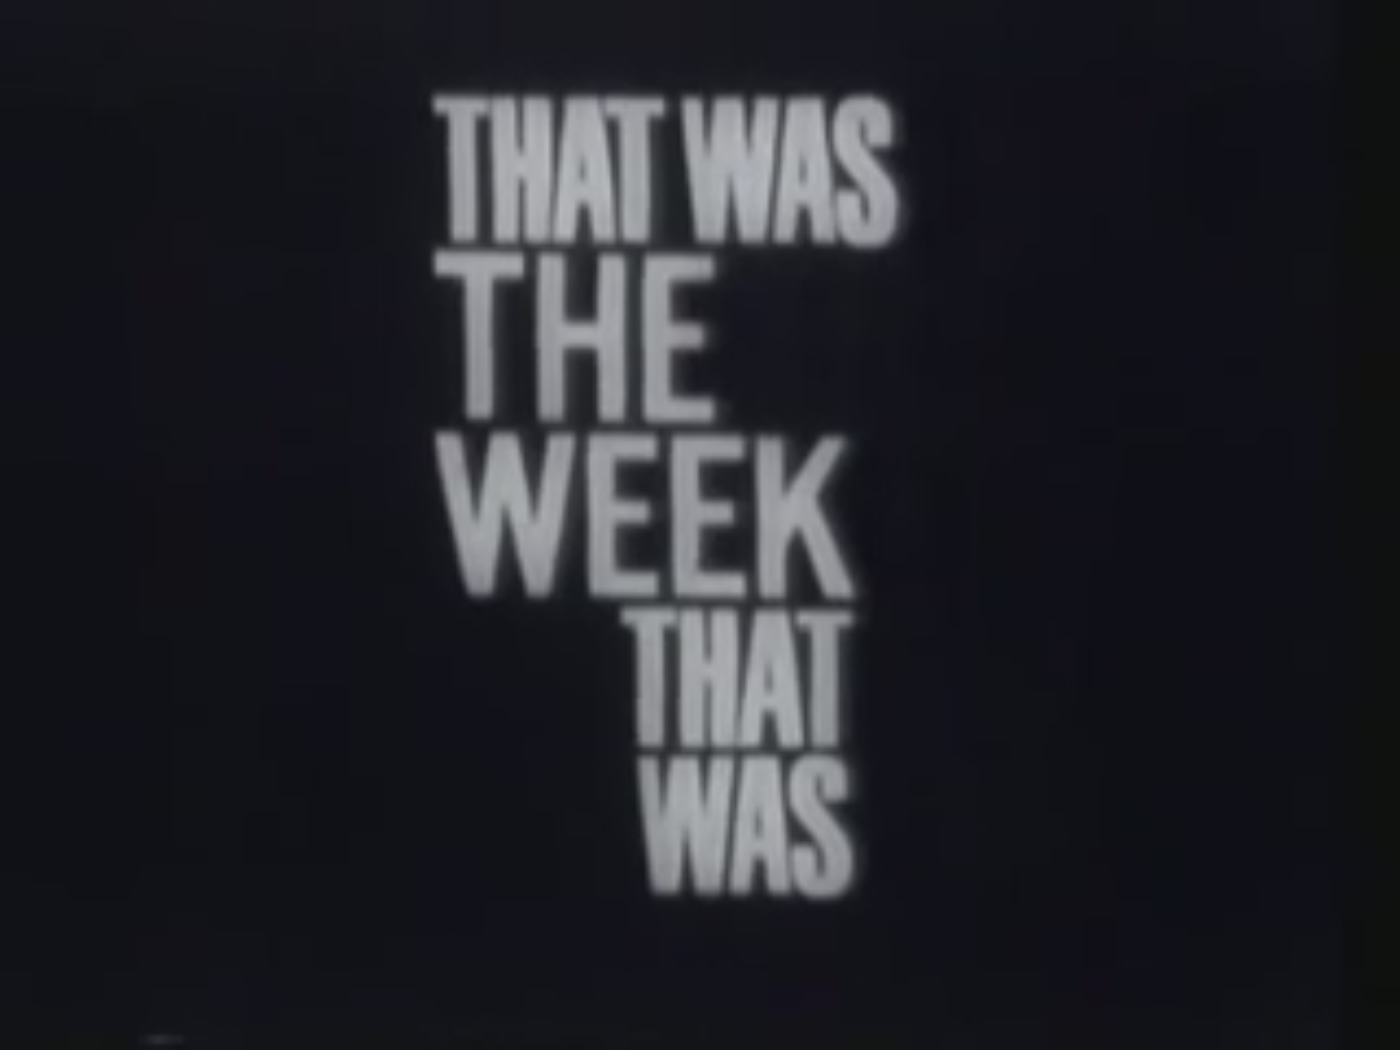 That_Was_the_Week_That_Was_opening_title